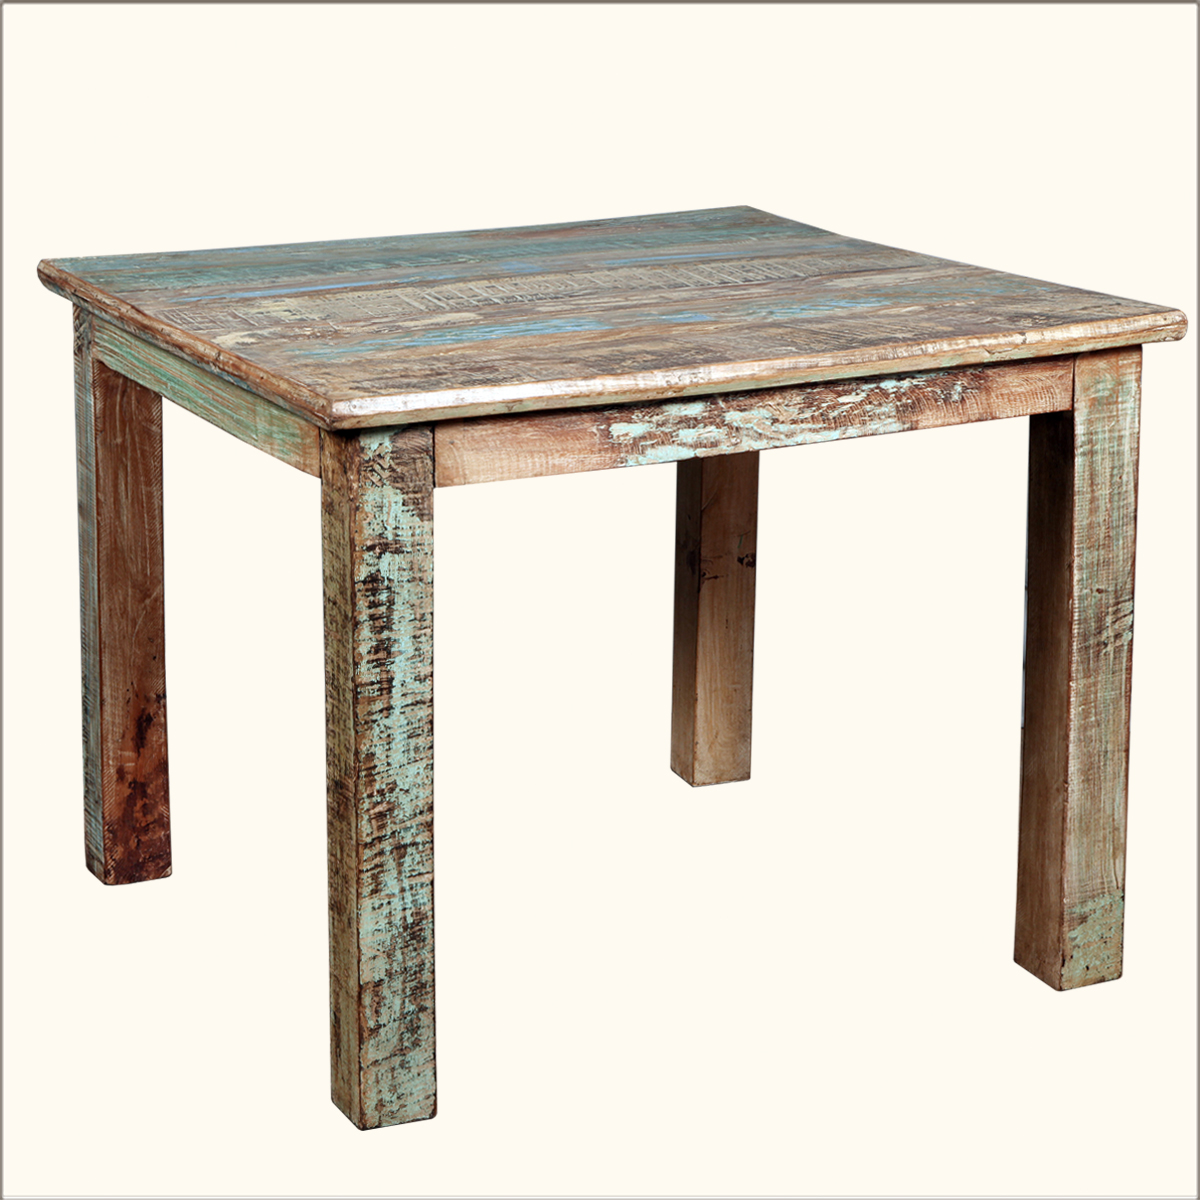 Rustic reclaimed wood distressed 40 square kitchen dining for Dinner table wood